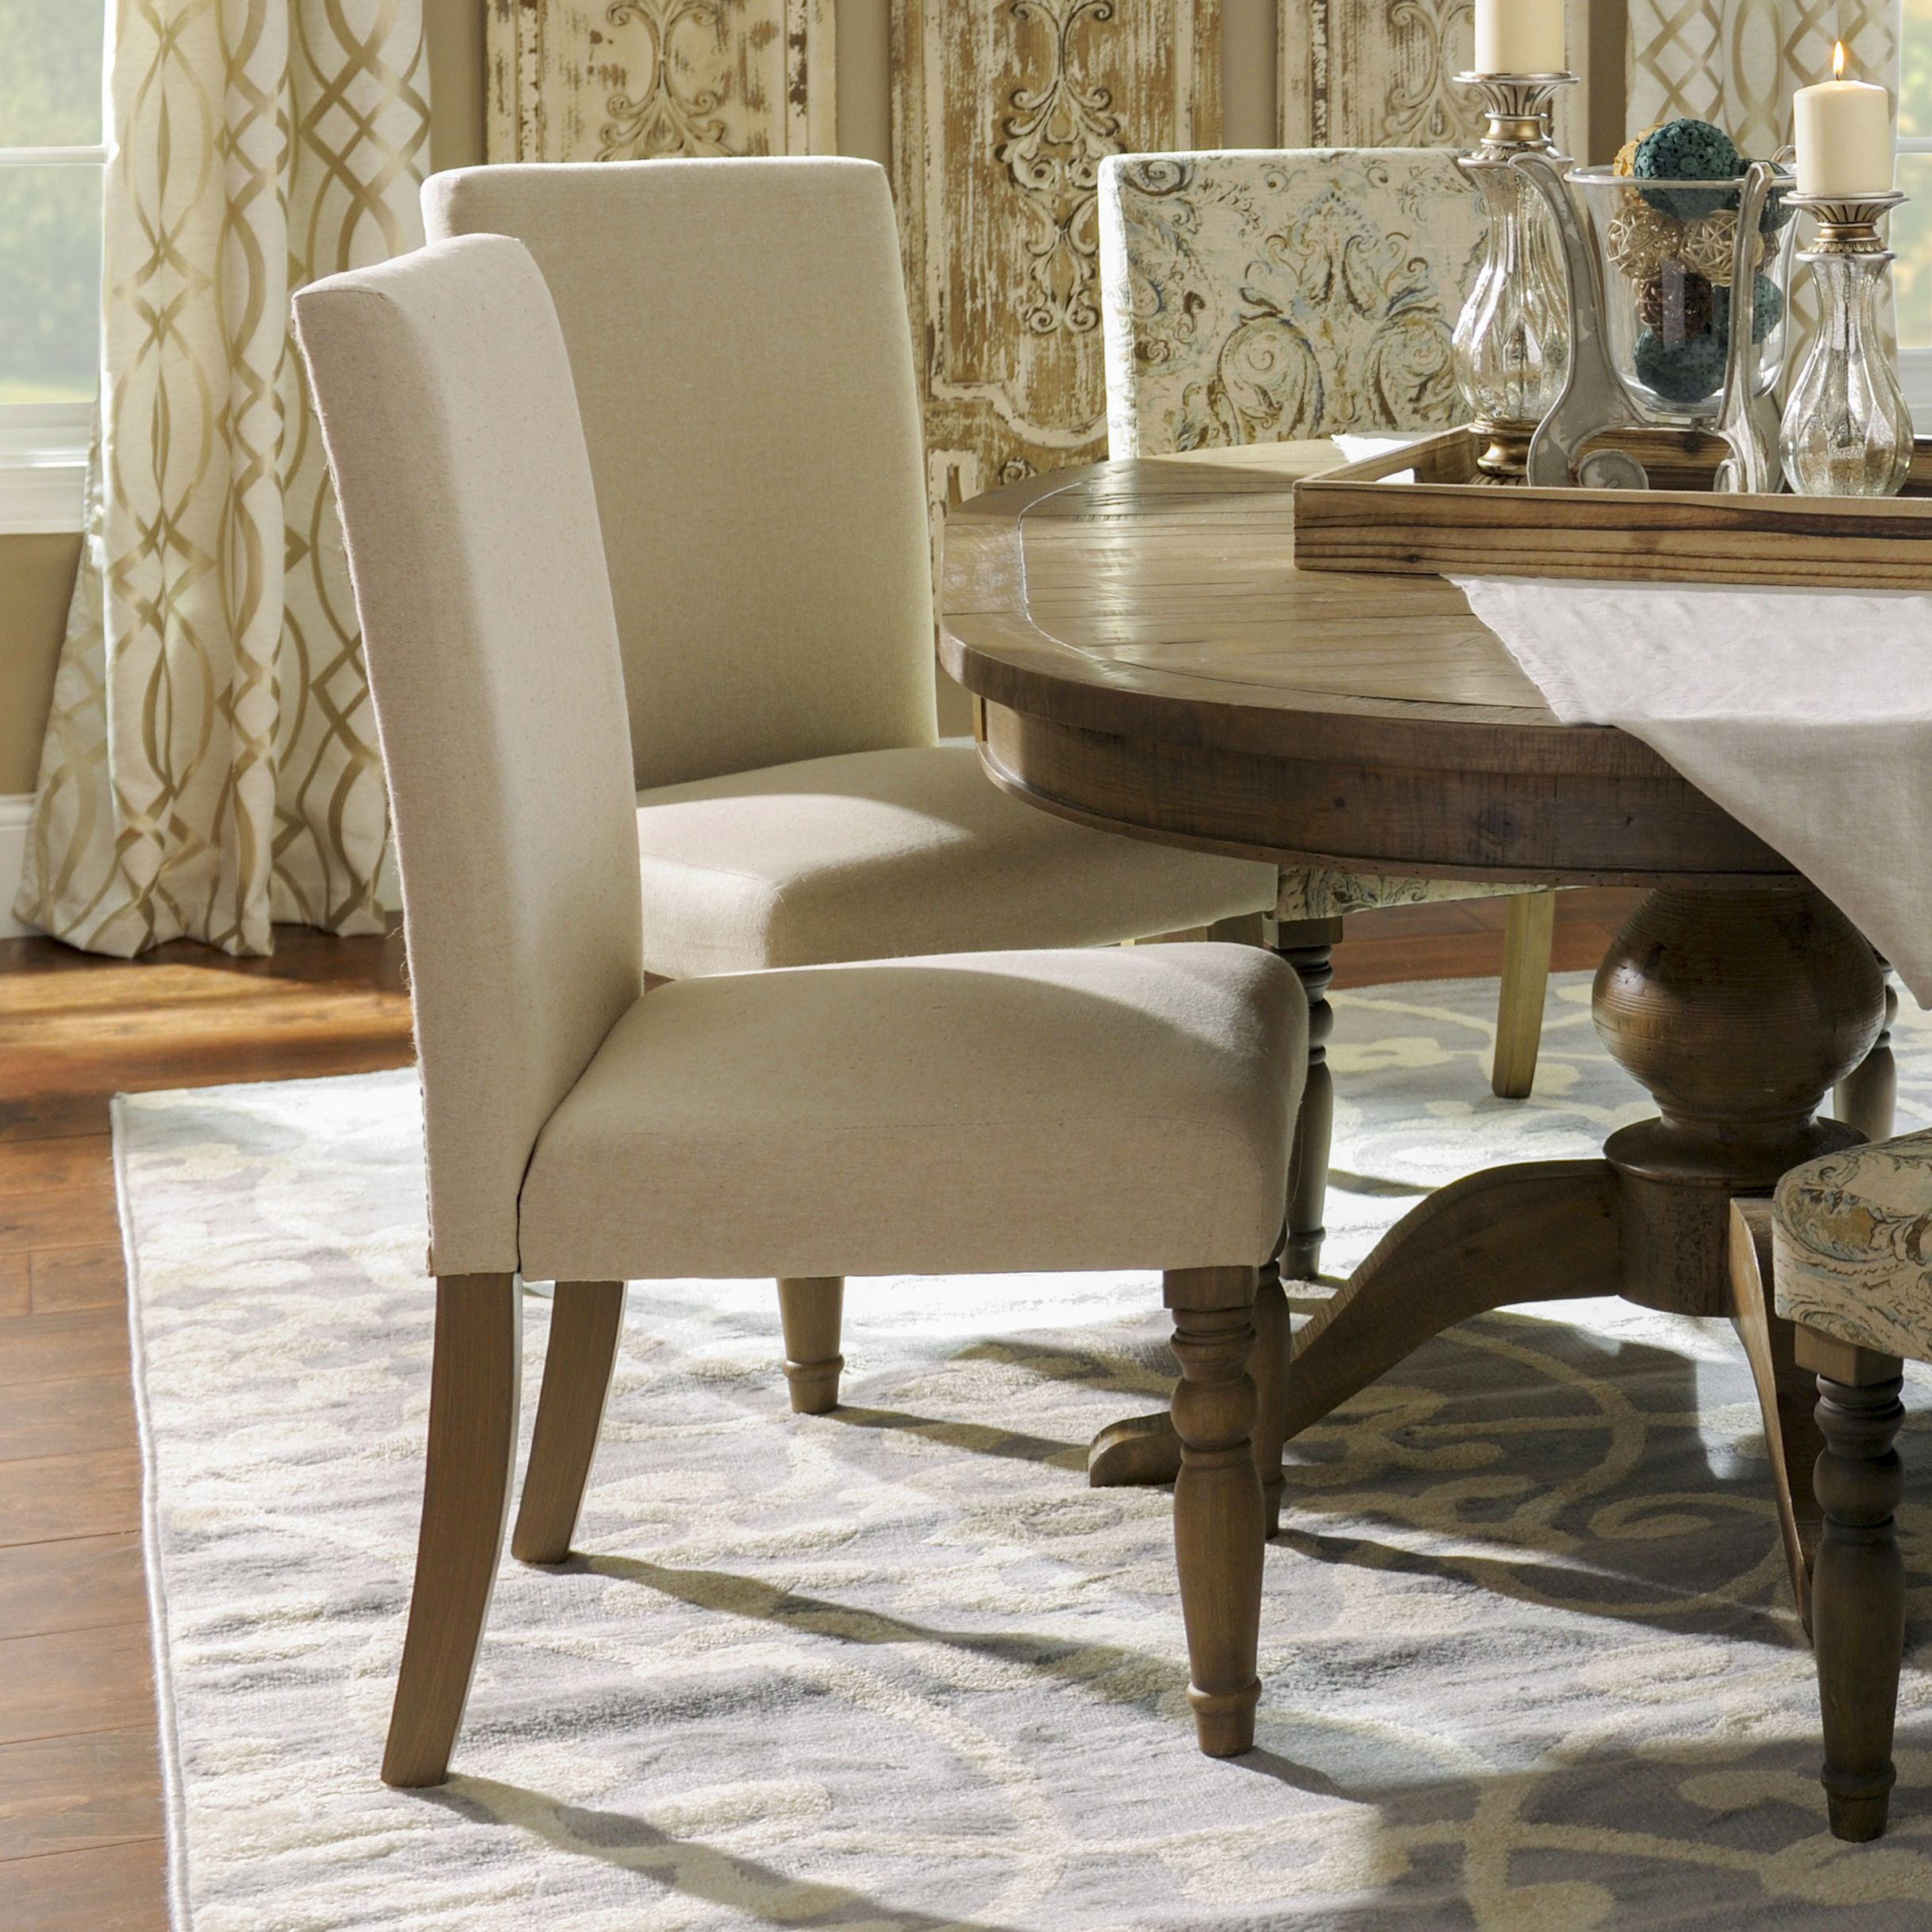 Oatmeal Burlap Parsons Chair (With images) | Dining room ...